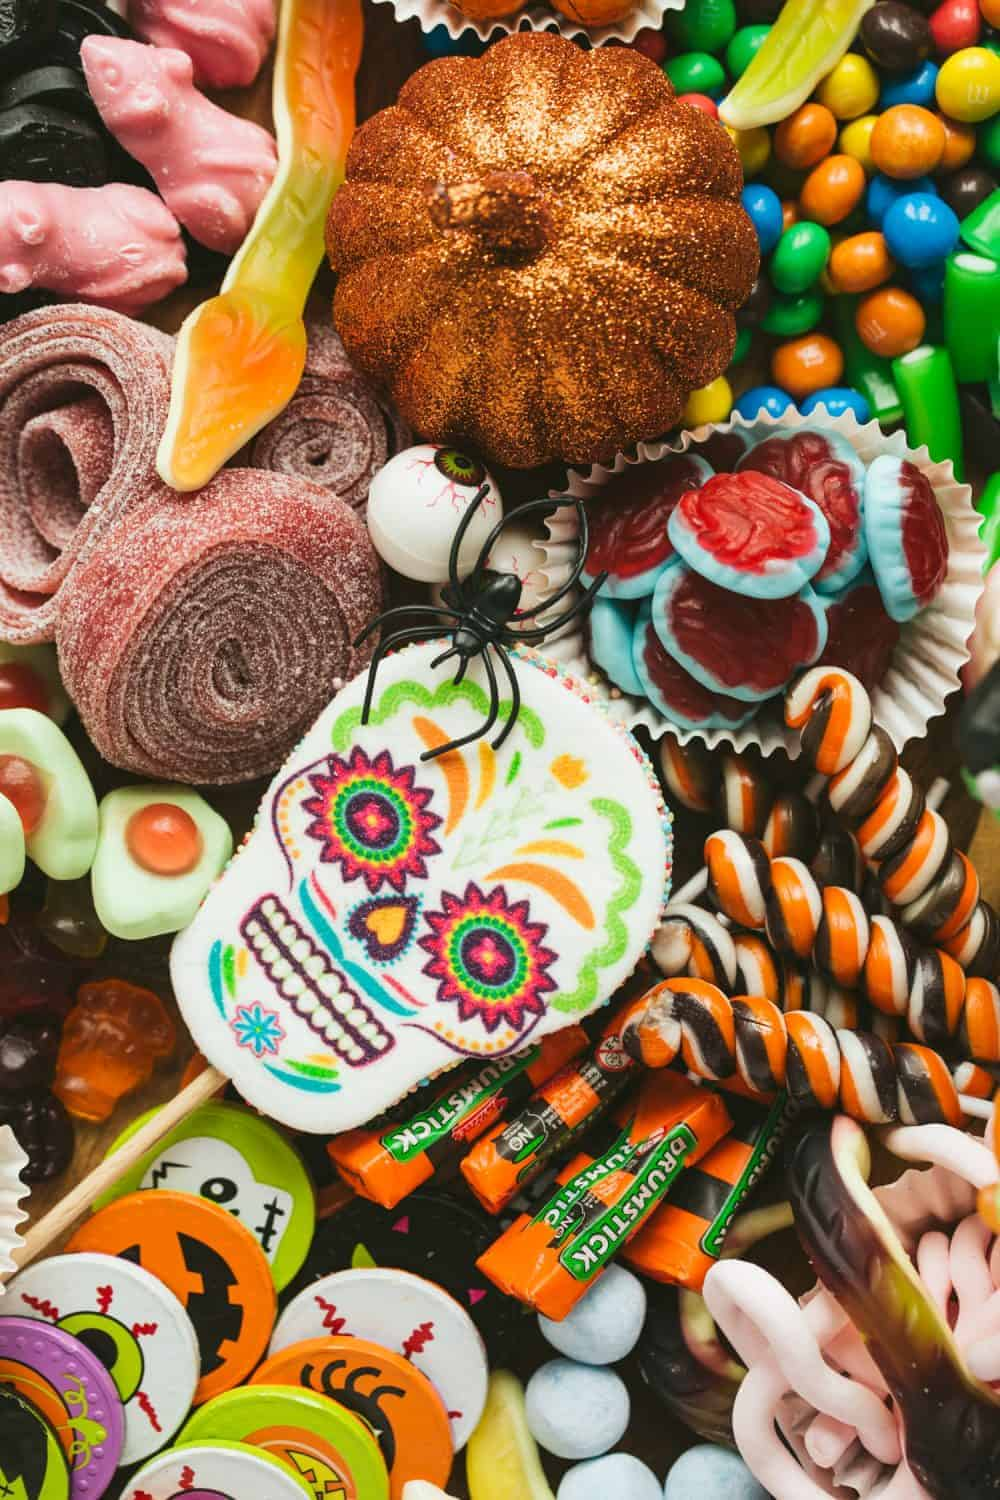 Close up image of Halloween sweets.